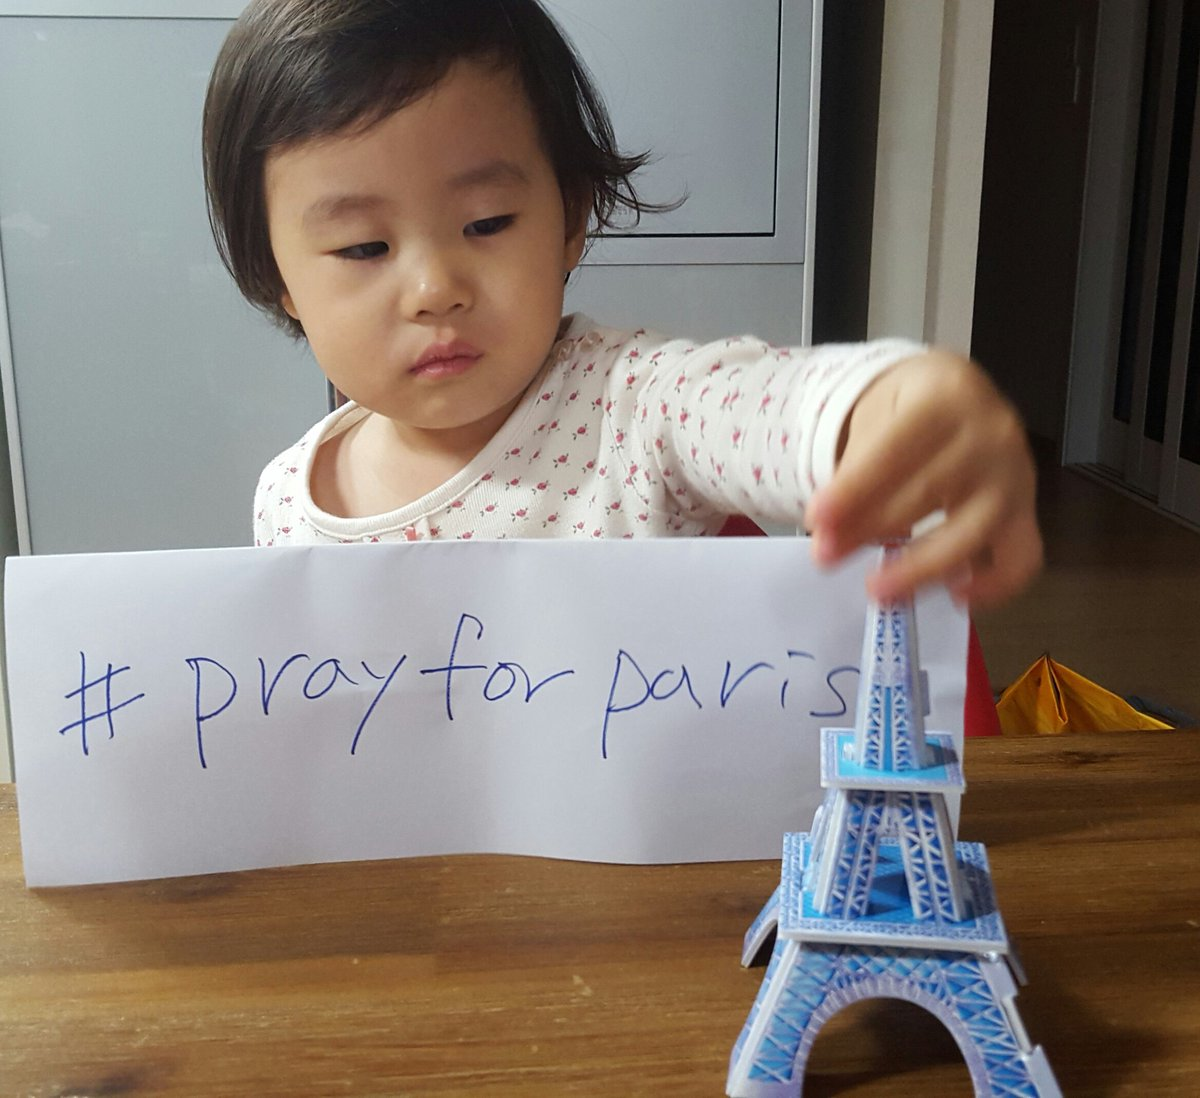 #Prayers4Paris from Korea. https://t.co/bj8suq79tN